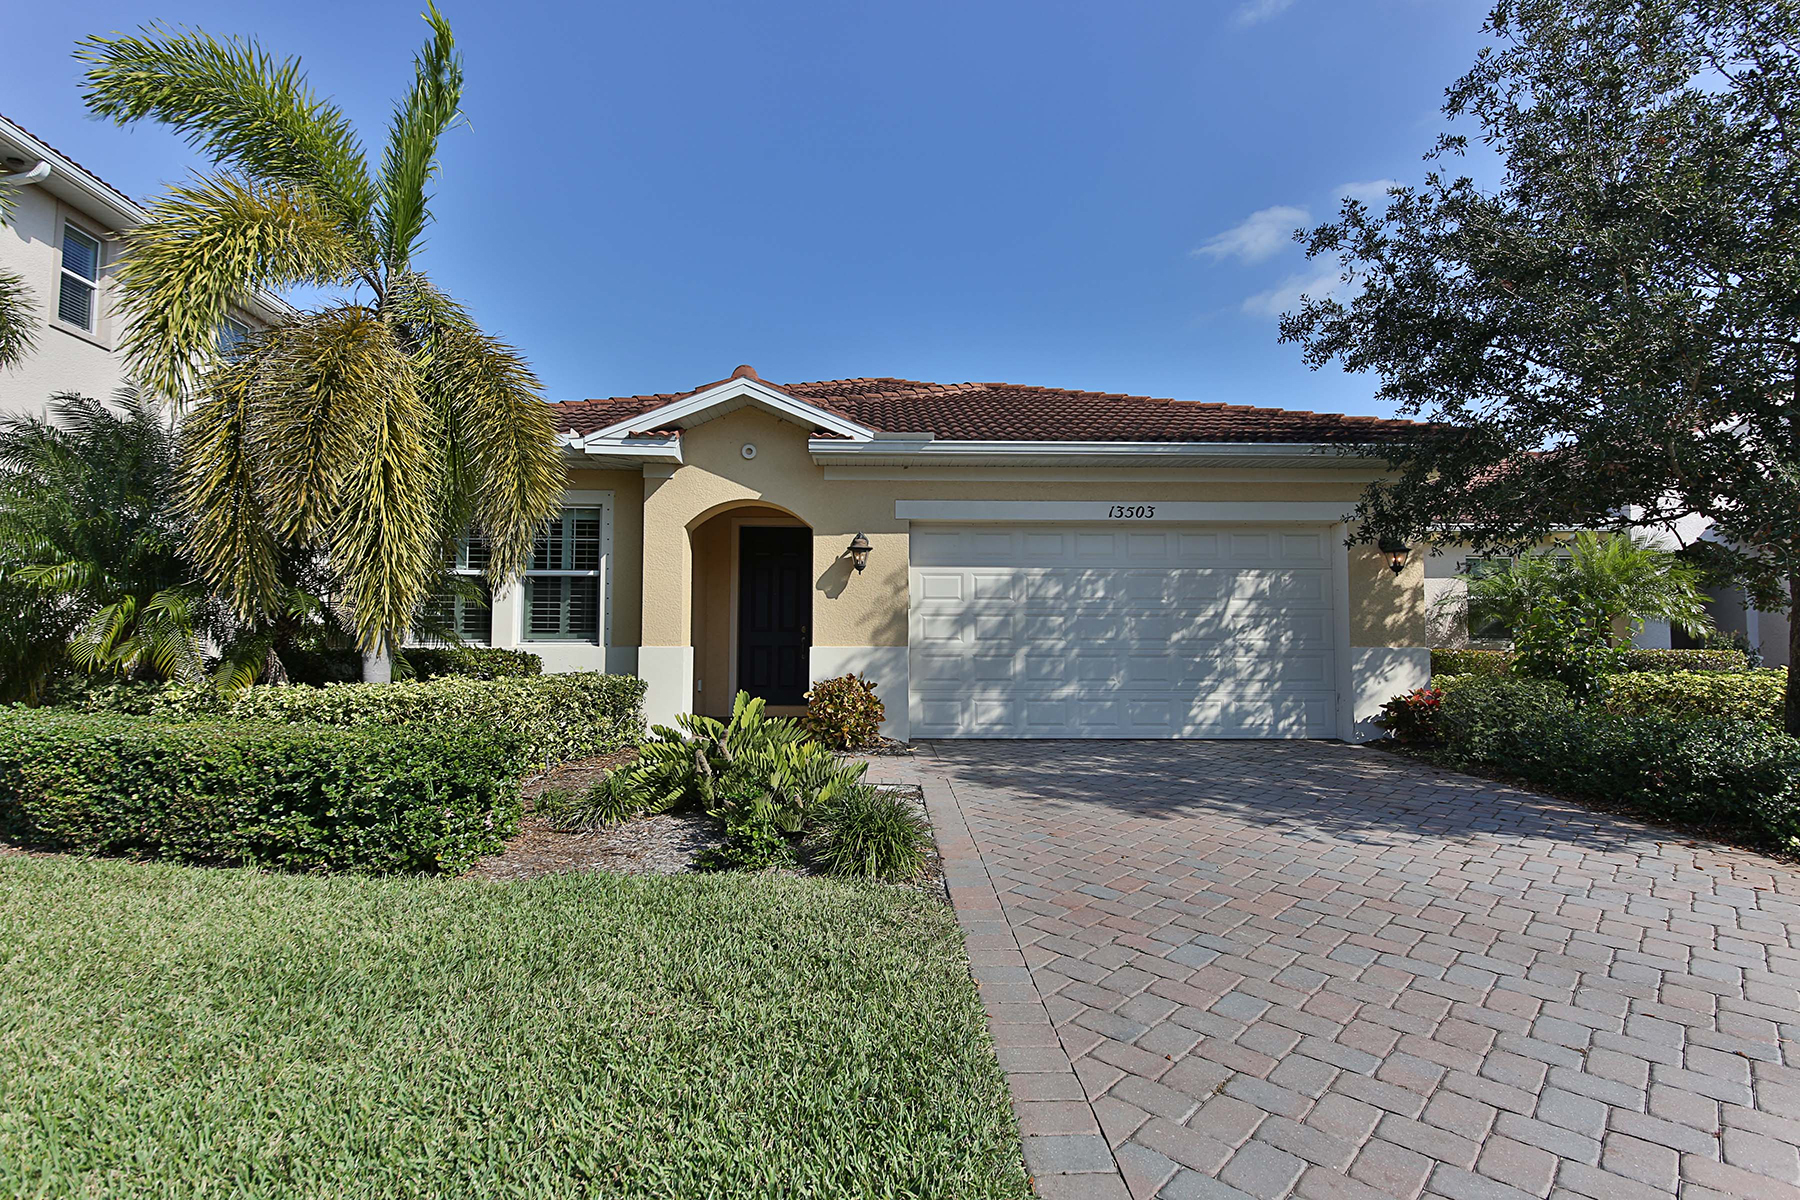 Single Family Home for Sale at MANCHESTER SQUARE 13503 Cambridge Ln, Naples, Florida 34109 United States